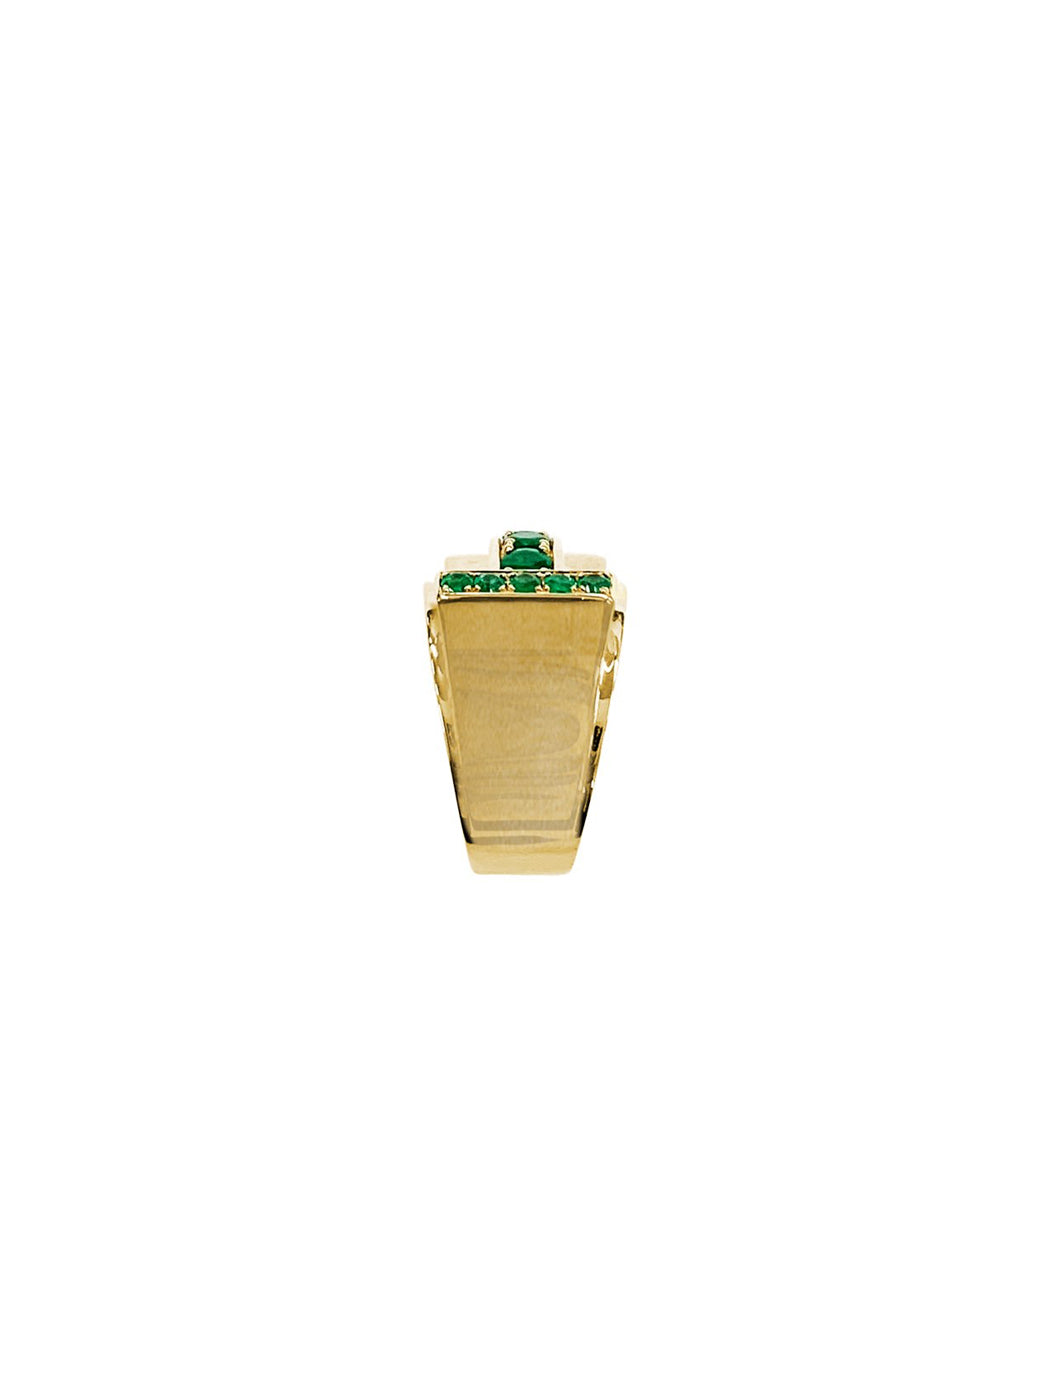 Fiorina Jewellery Martini Ring Emerald Shank View